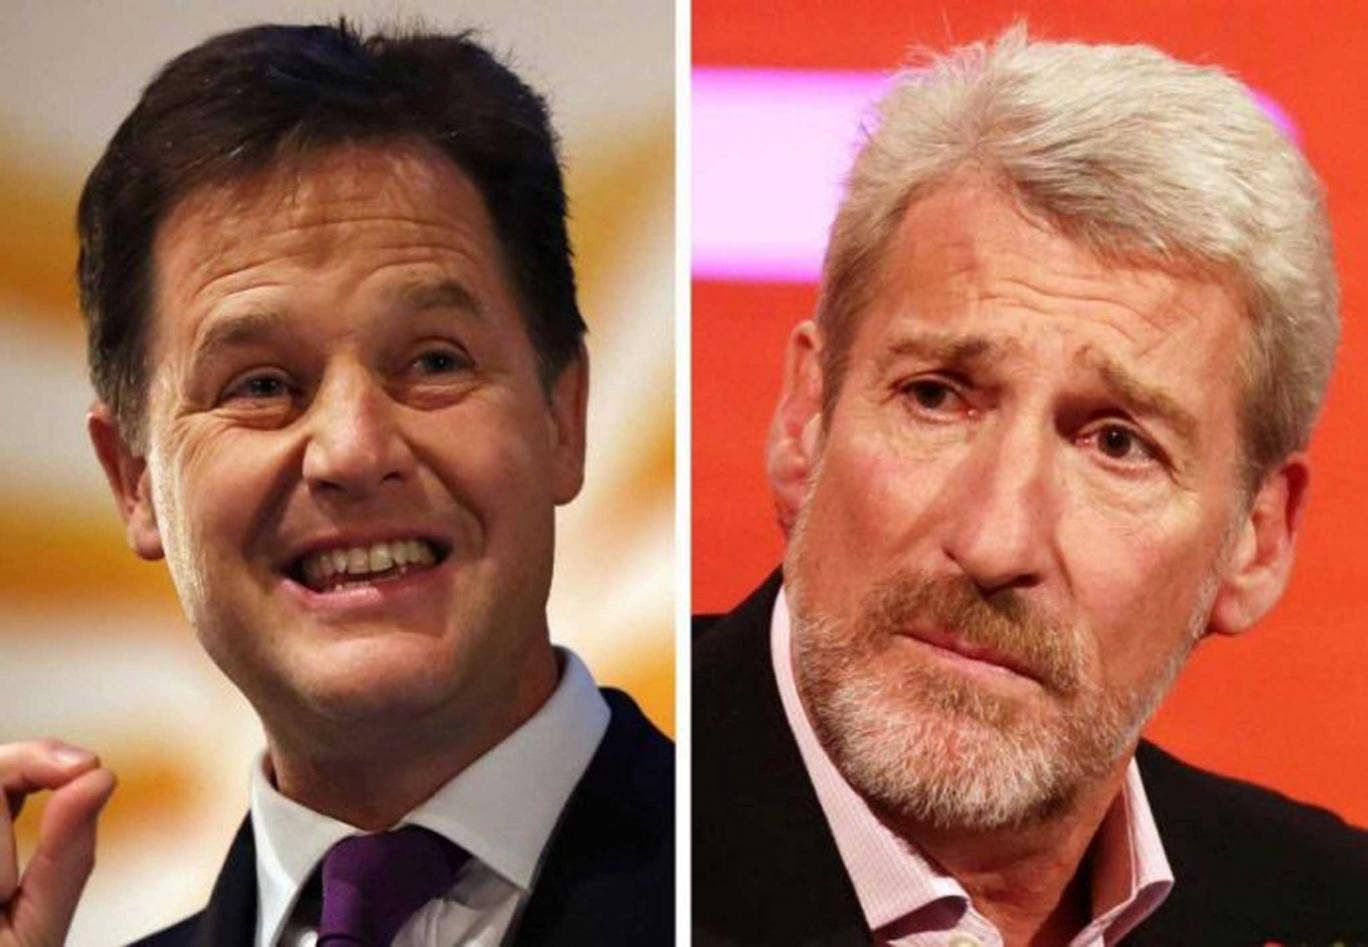 Jeremy Paxman's recent comment should not deter people from voting - even for Nick Clegg